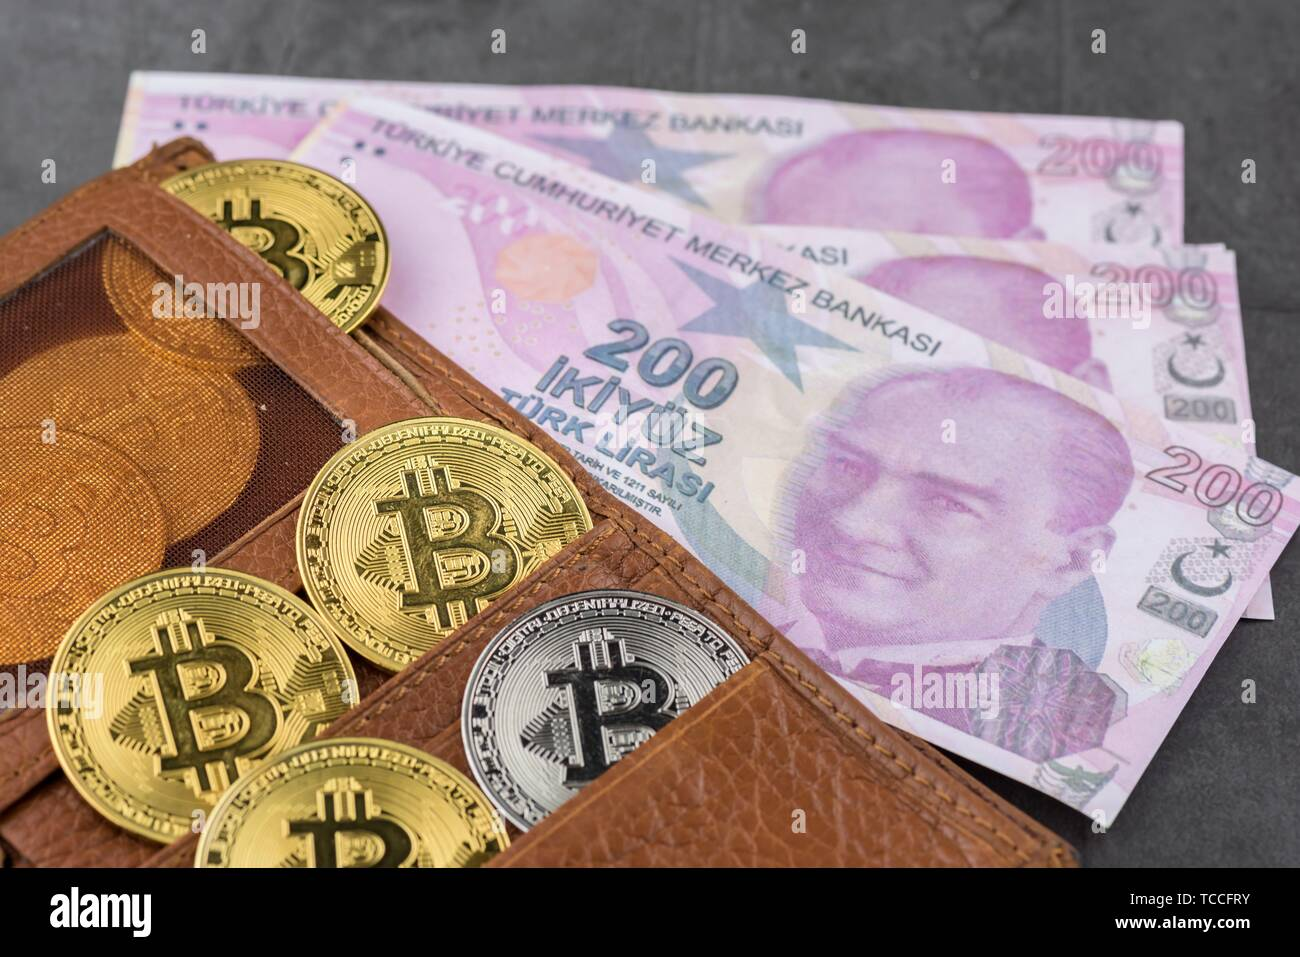 View of metal bitcoins in brown leather wallet and over Turkish Lira banknotes. Concept image for cryptocurrency. Stock Photo